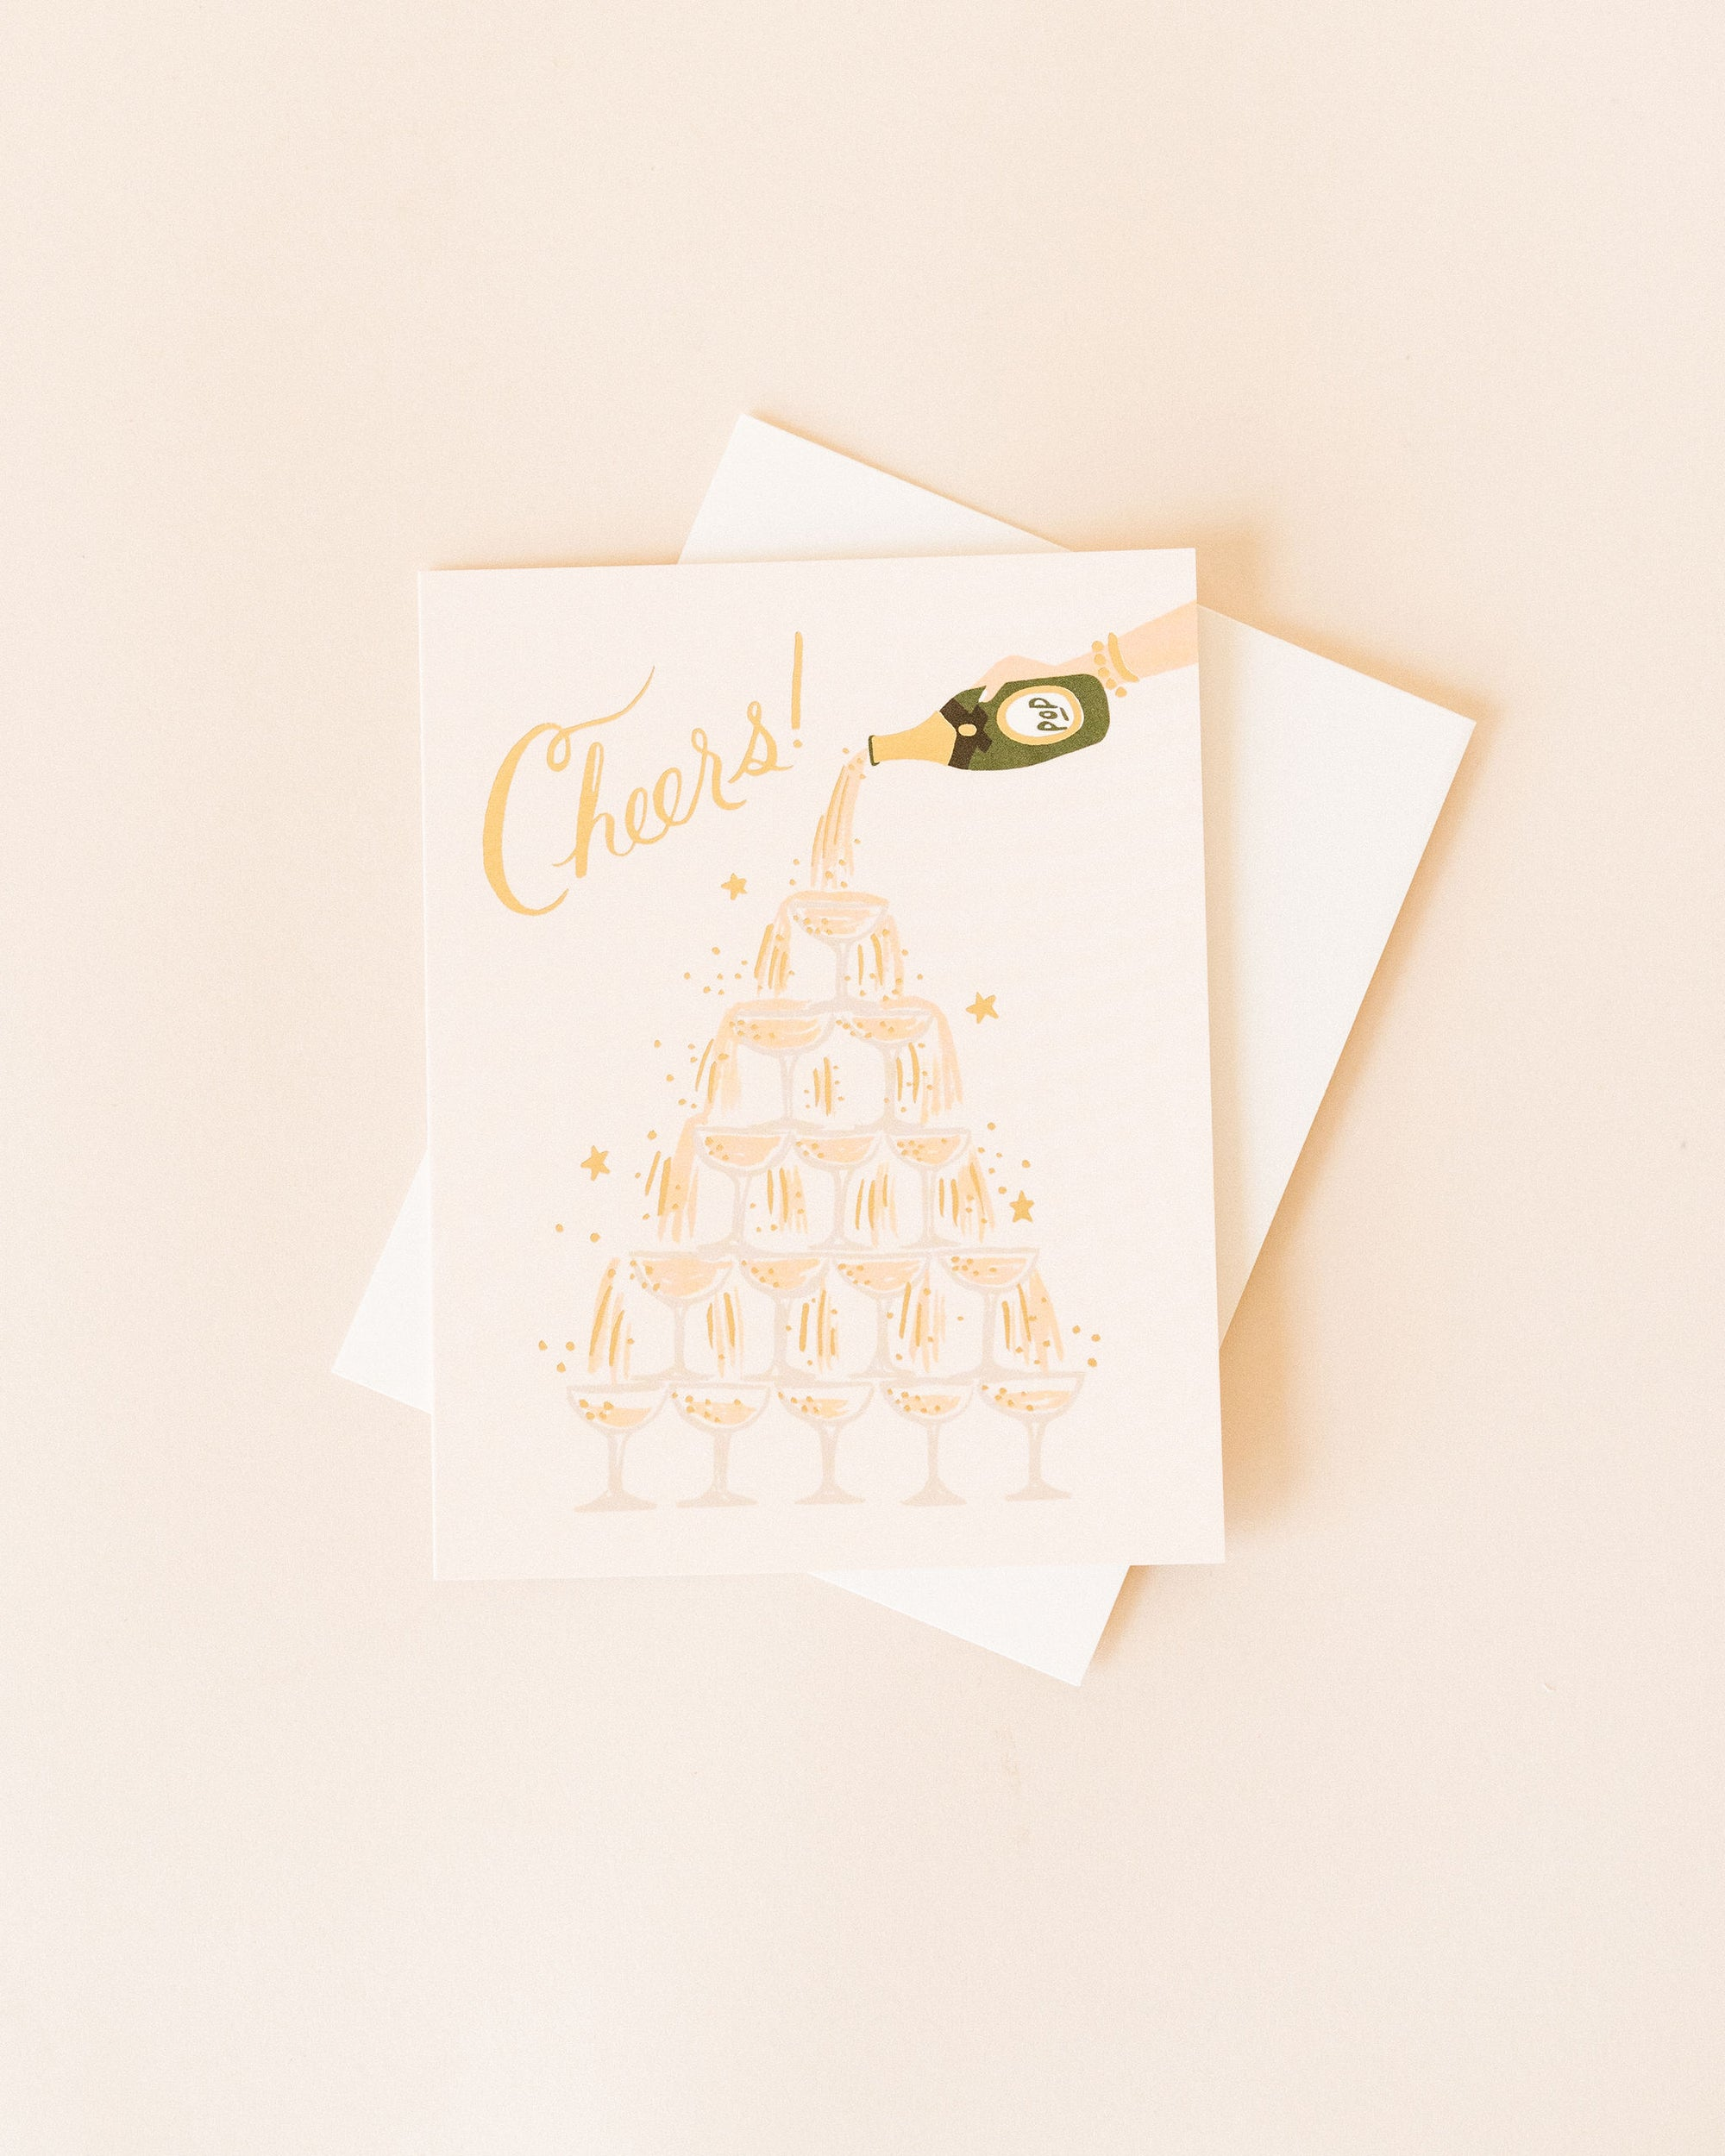 Champagne Cheers Card